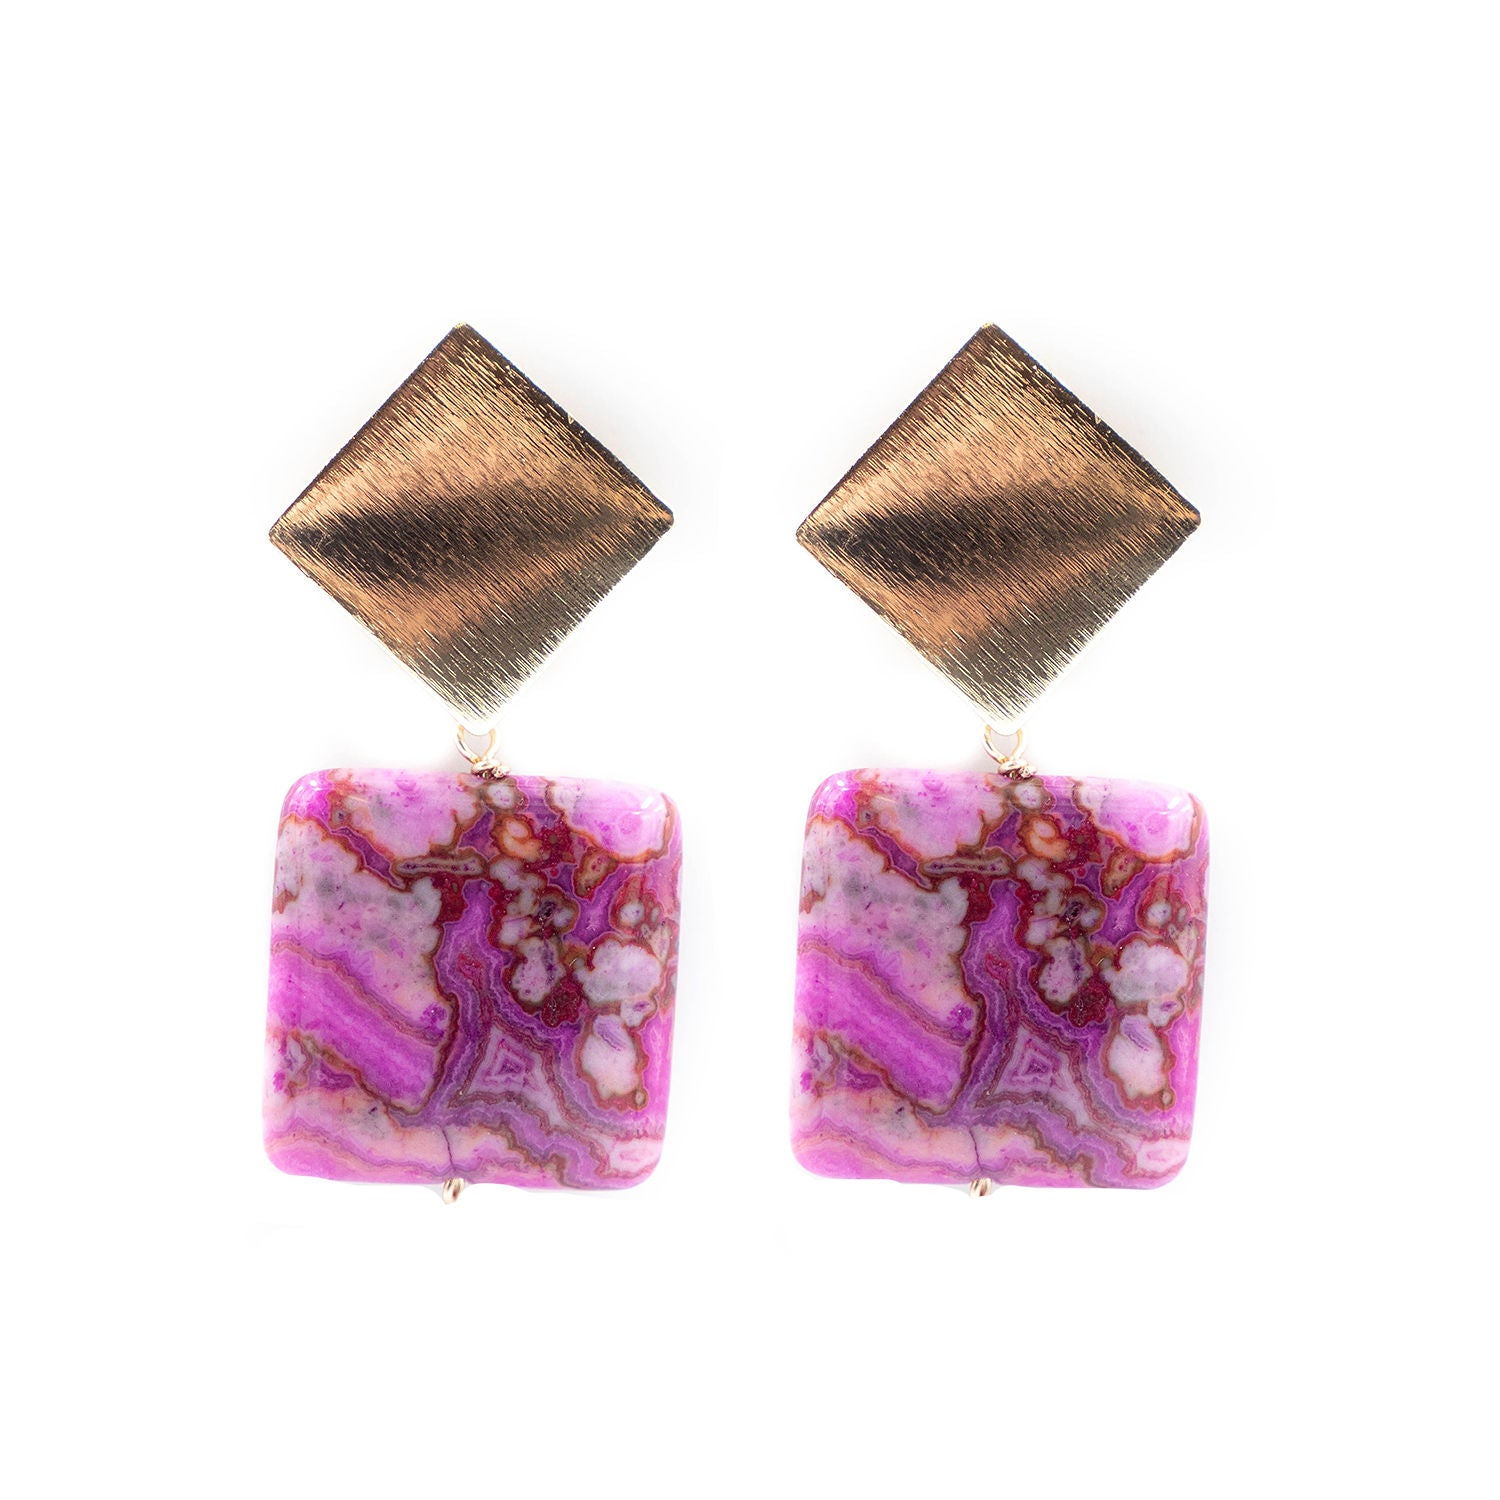 Darby Earring, Pink Agate